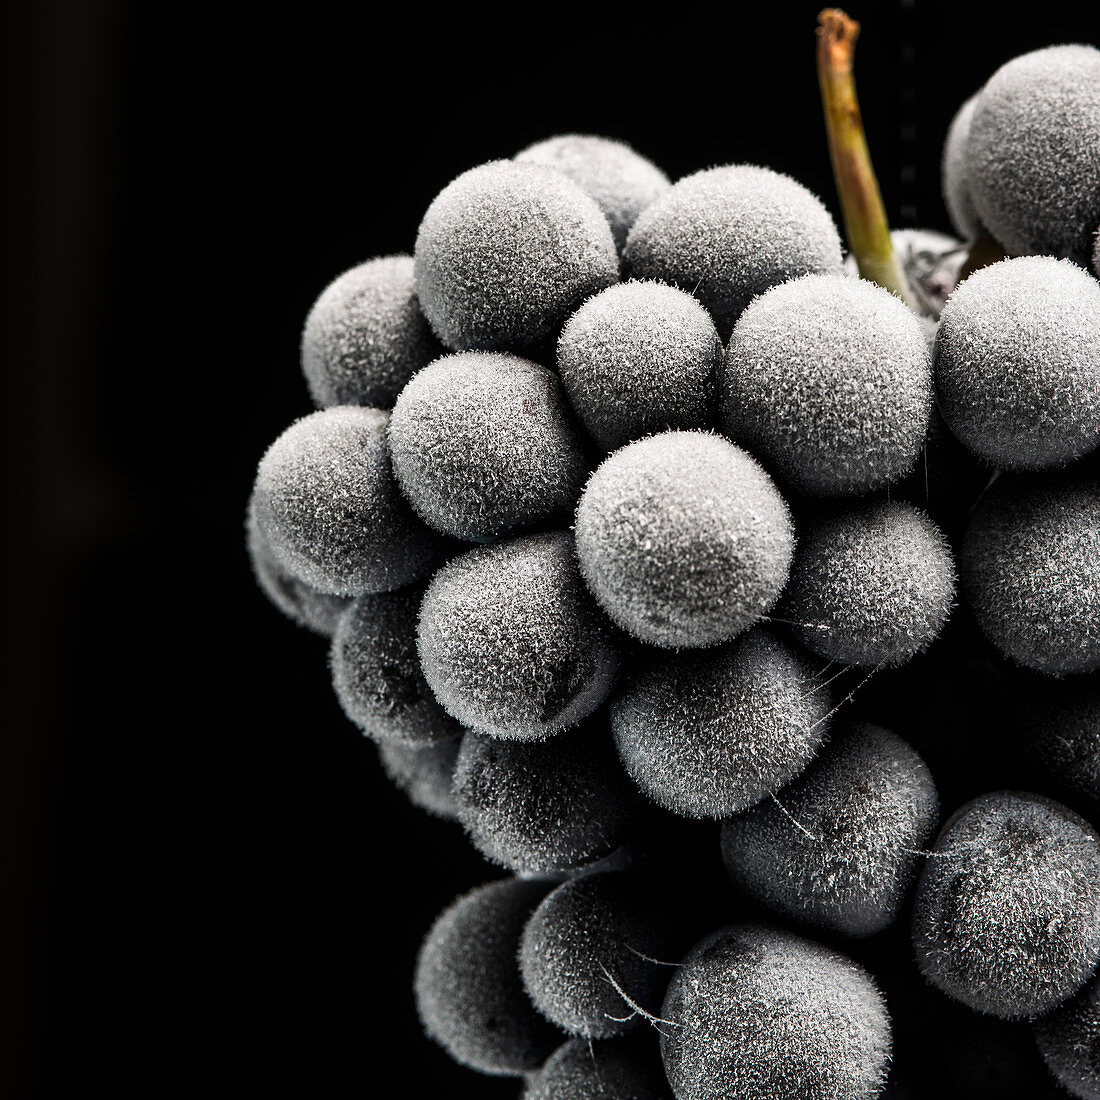 Close-Up of Frozen Barbera Grapes on Black Background